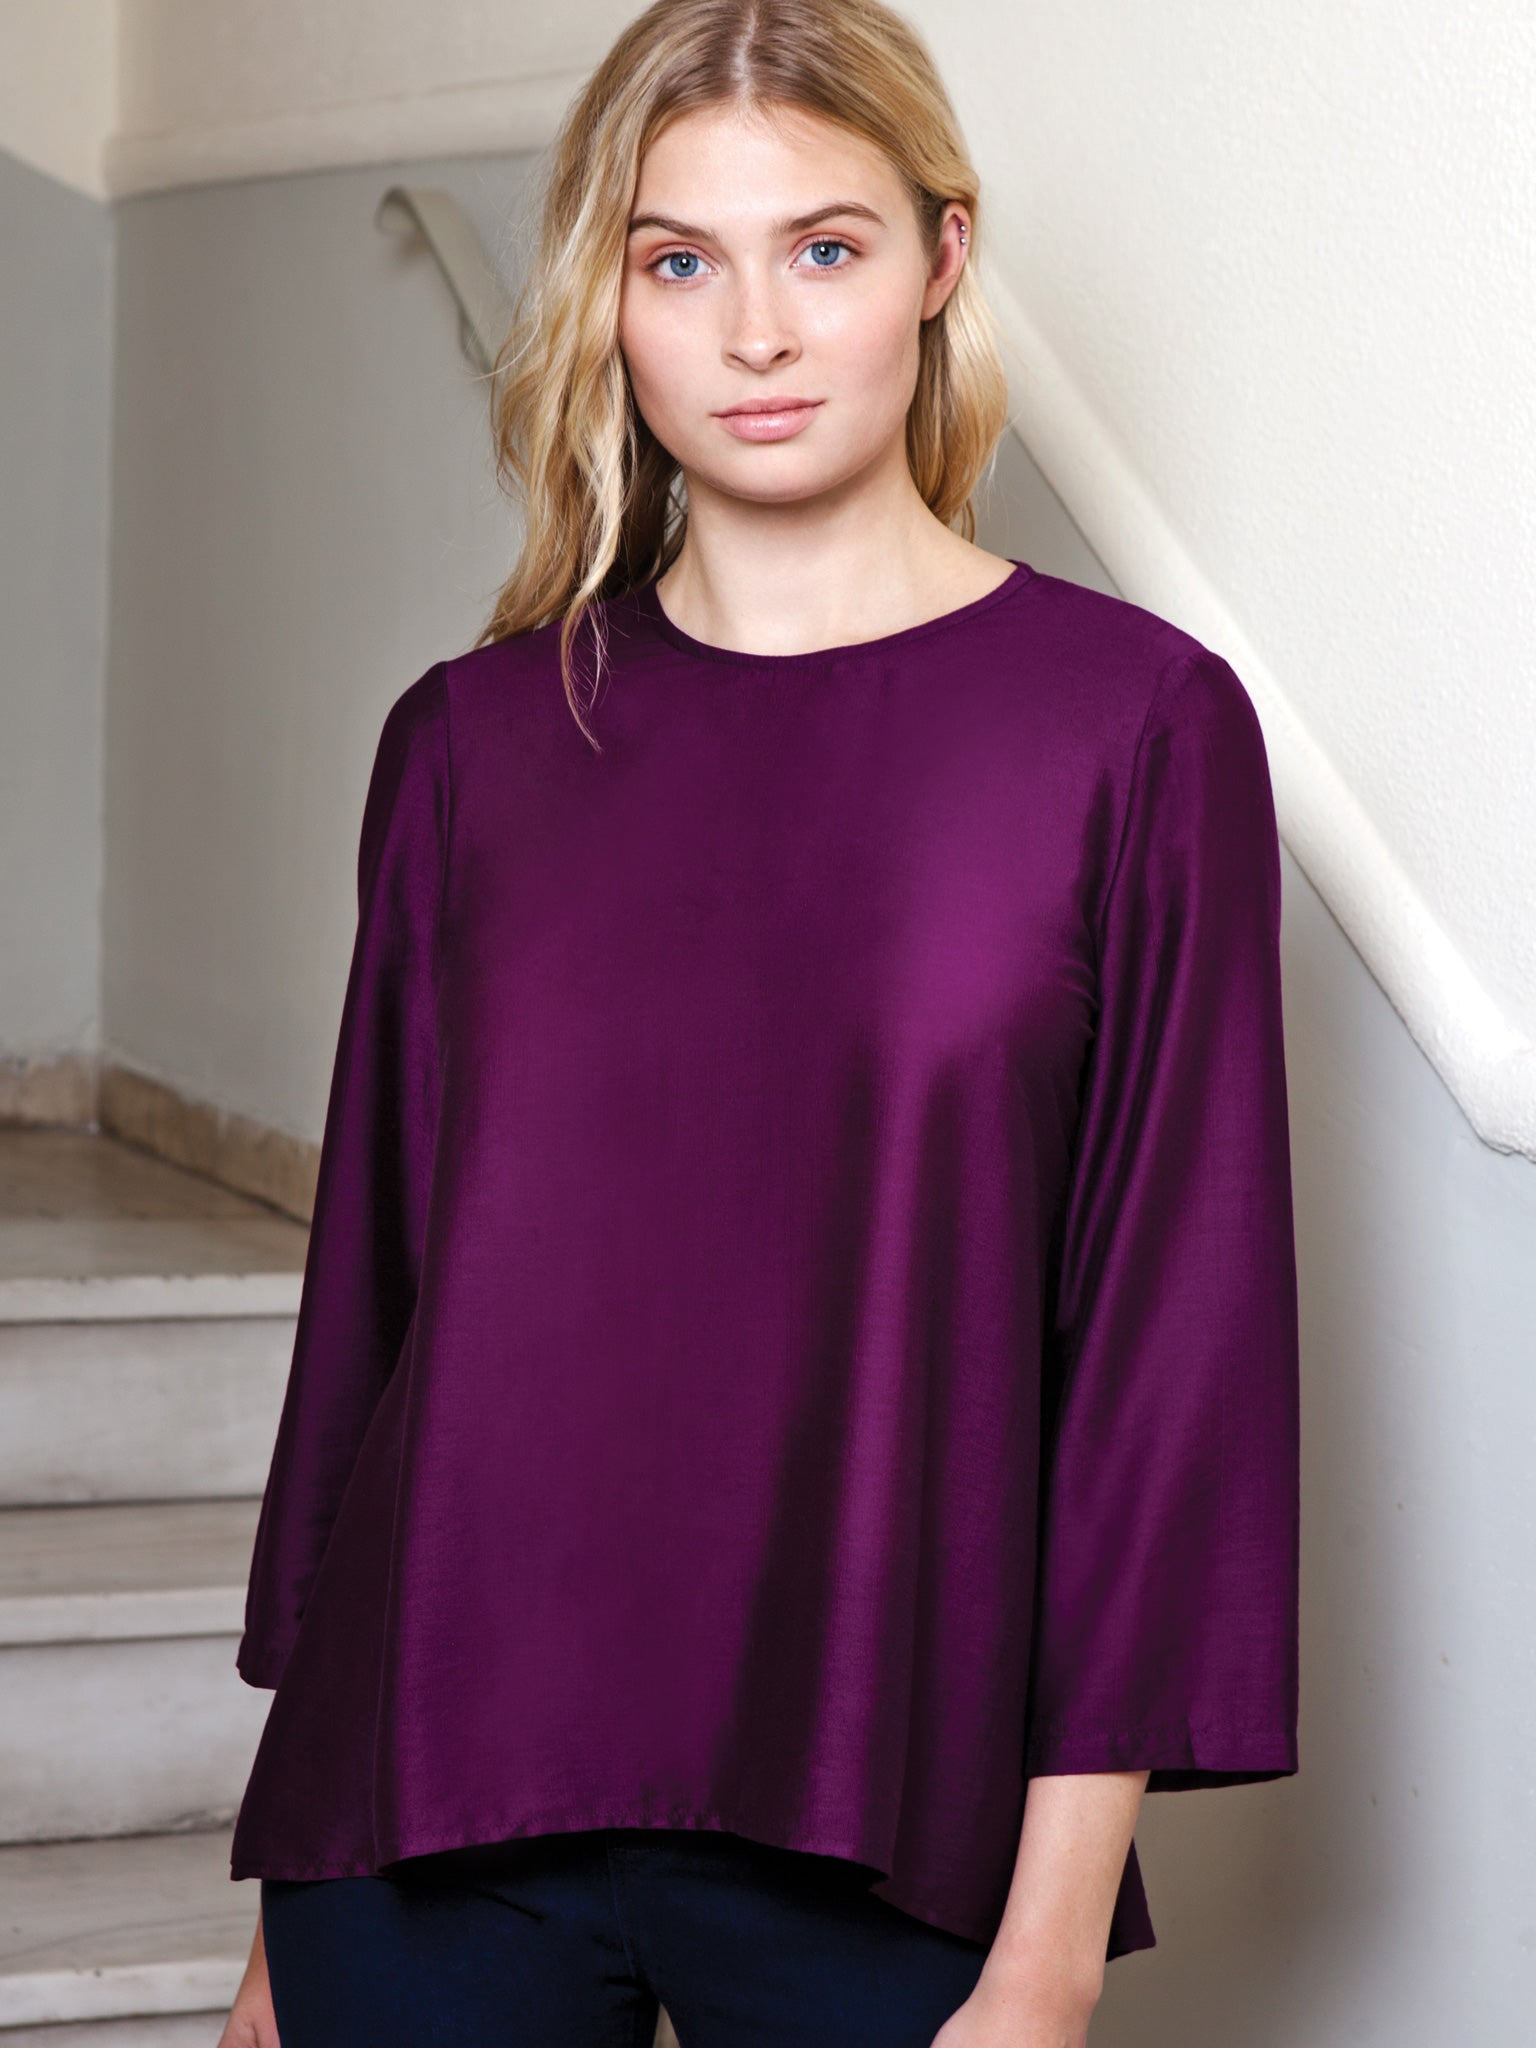 Always A Girl At Heart Violet Blouse